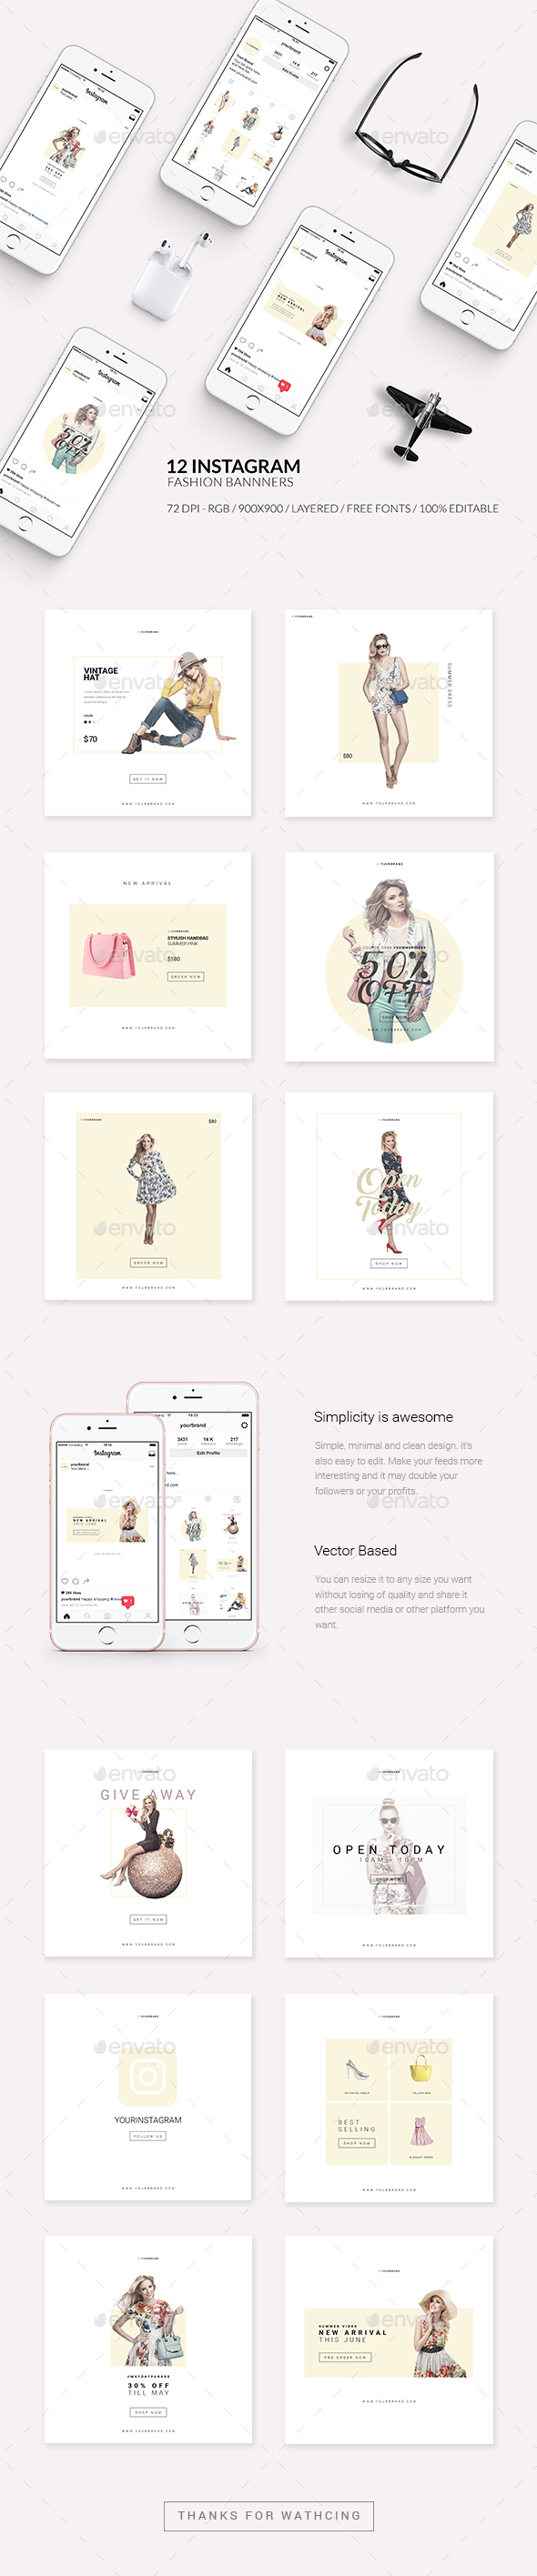 Fashion Instagram Promotional Template - Web Elements